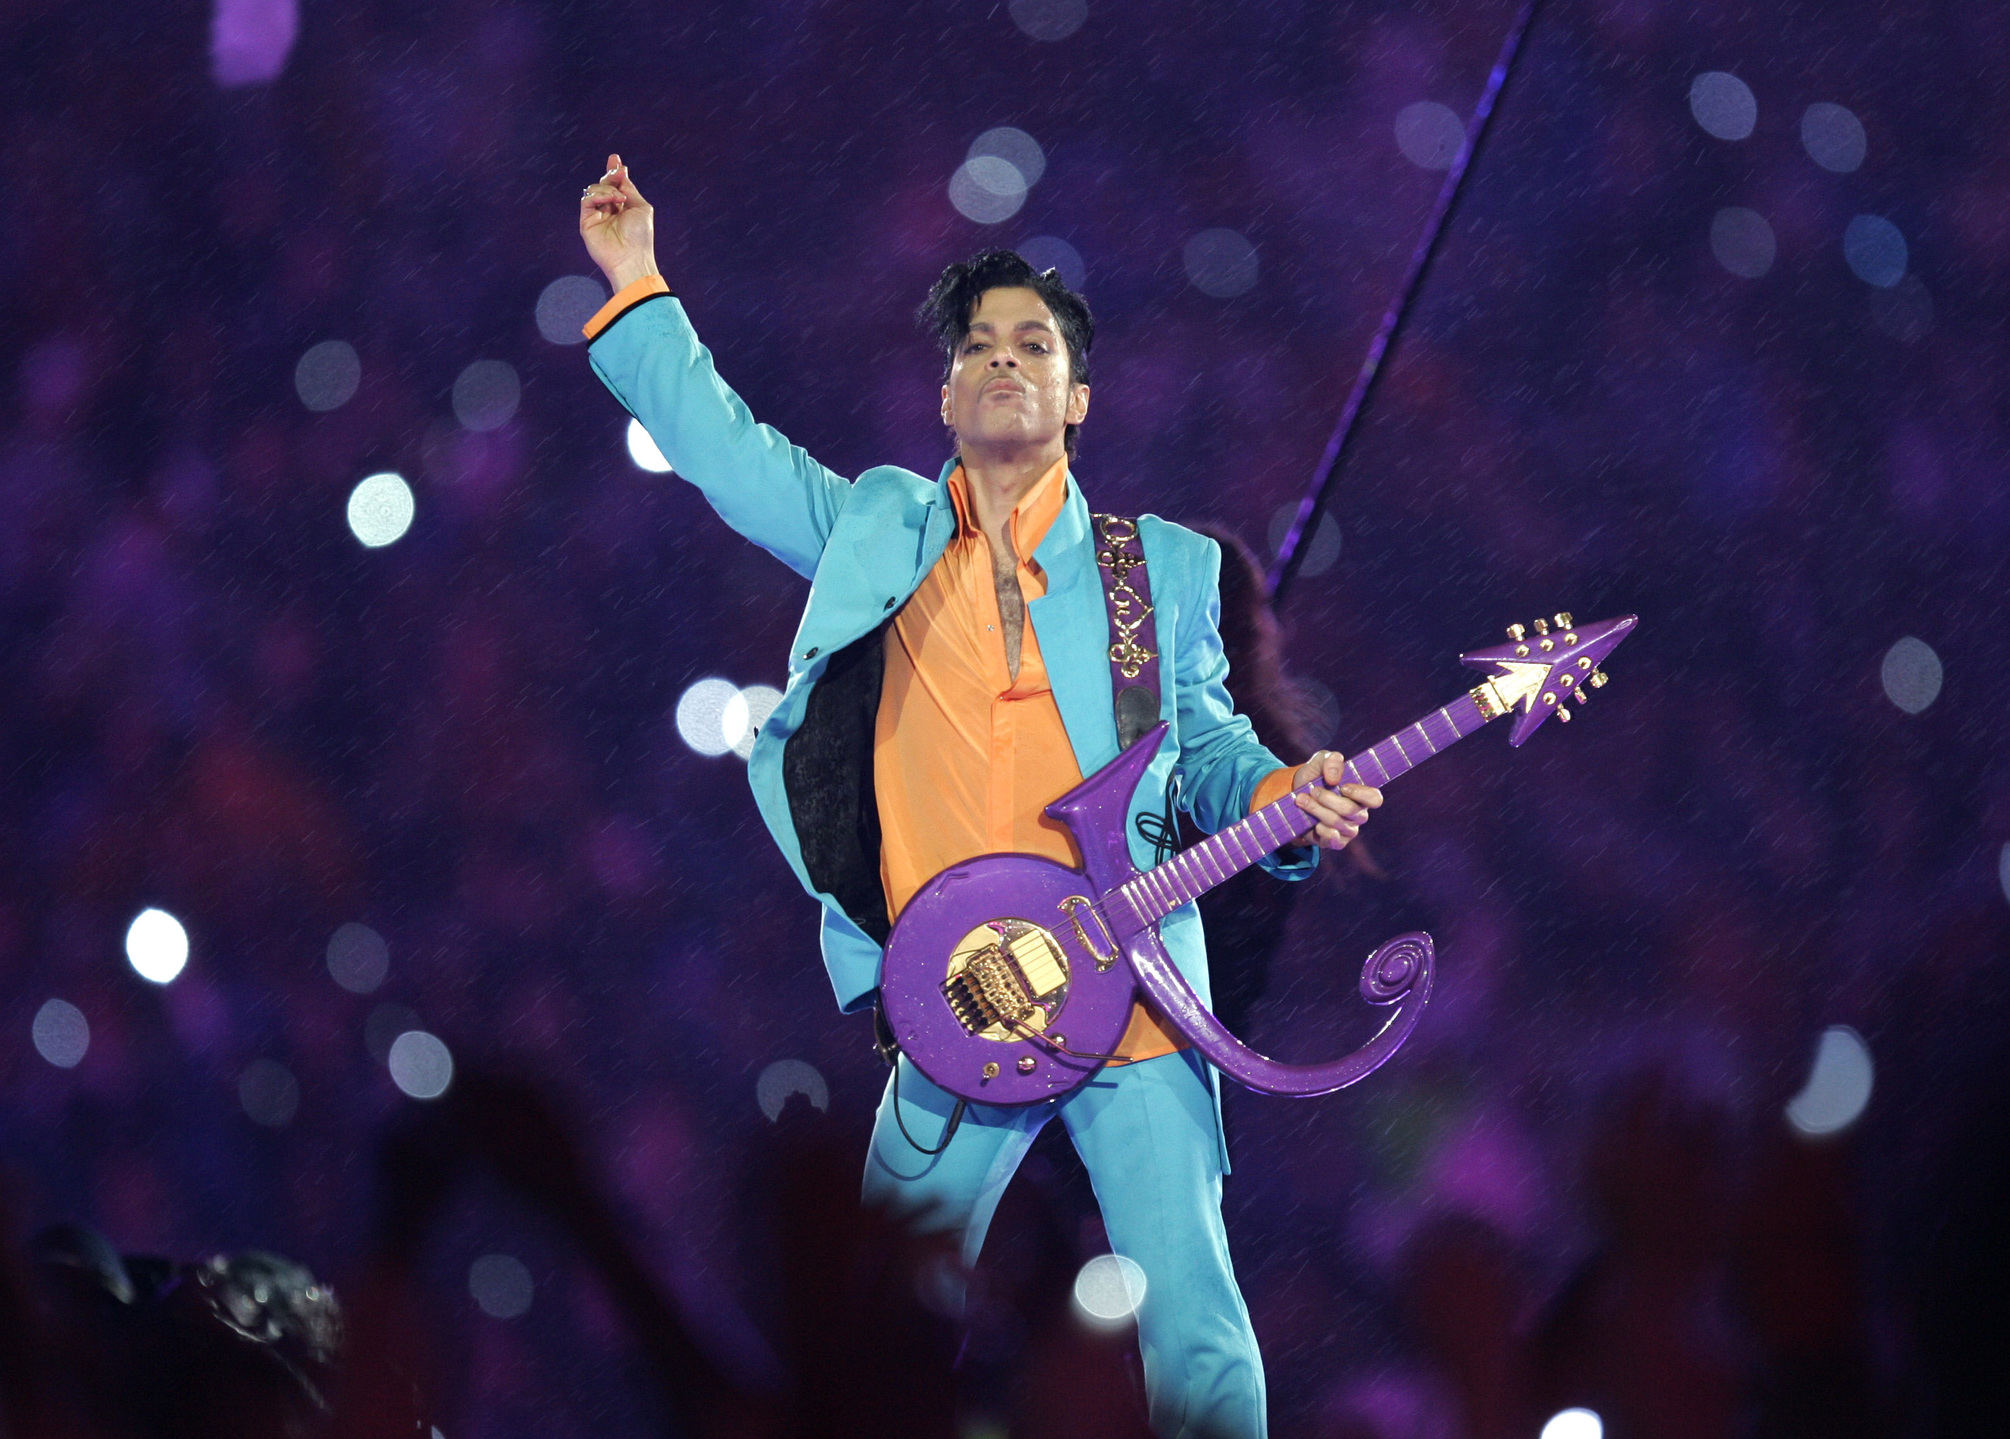 Prince in blue suit and orange shirt